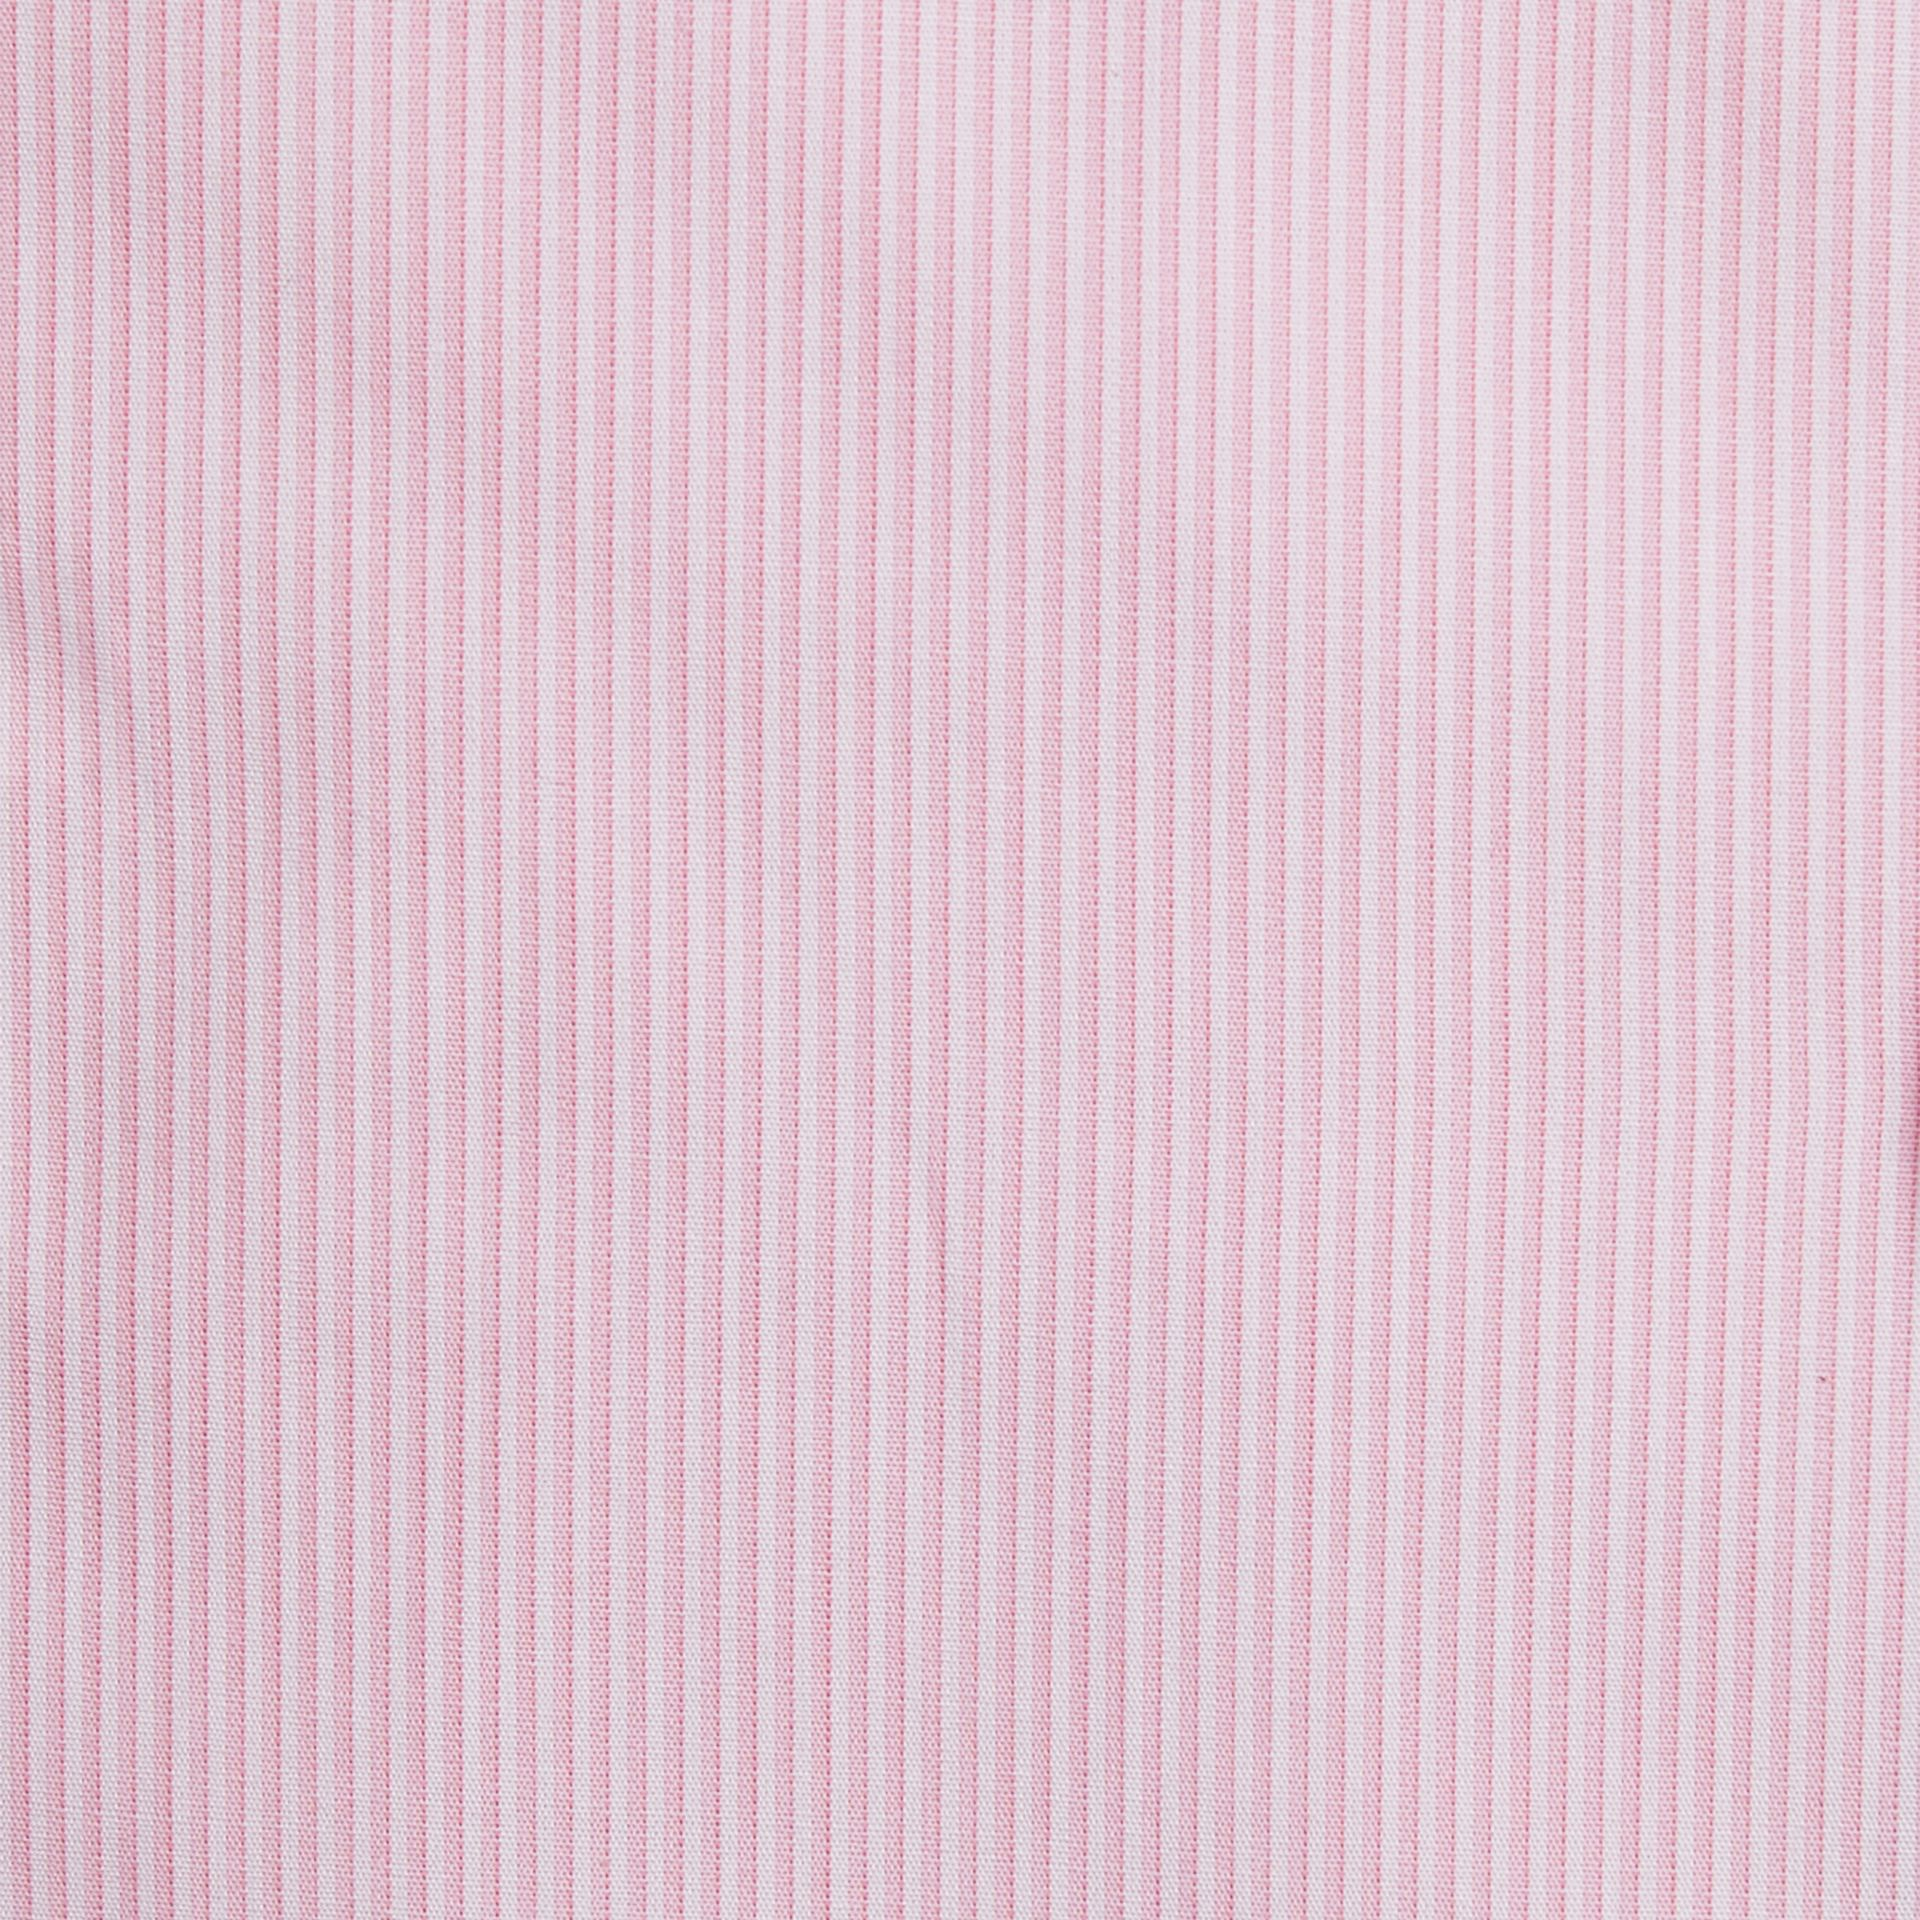 Slim Fit Striped Cotton Poplin Shirt in City Pink - gallery image 2